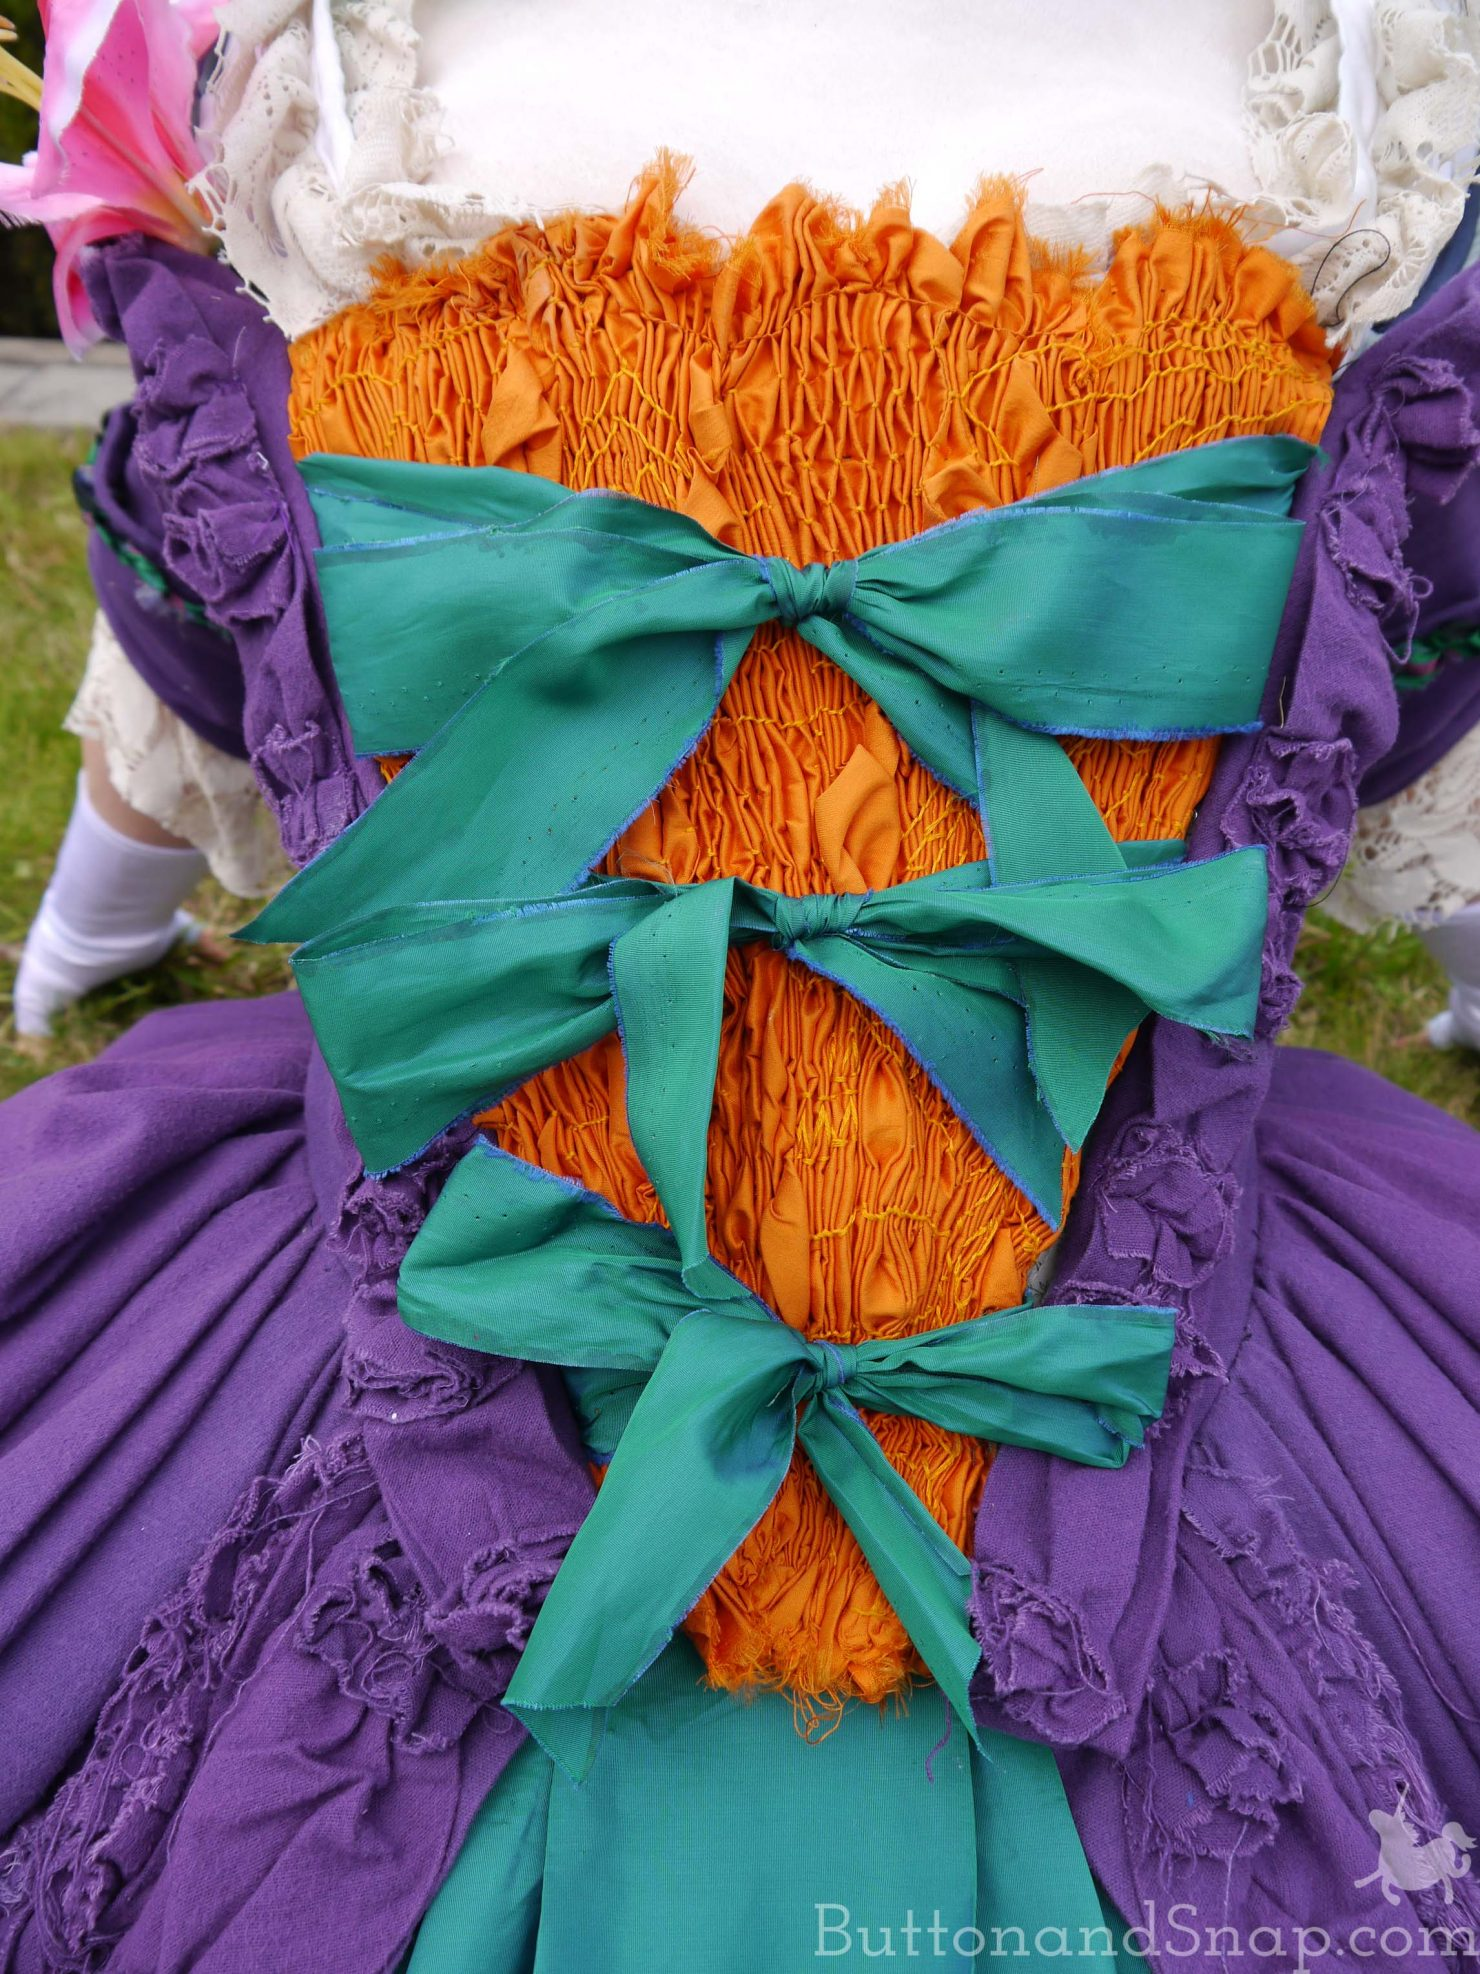 Jokerette Stomacher Full Front view